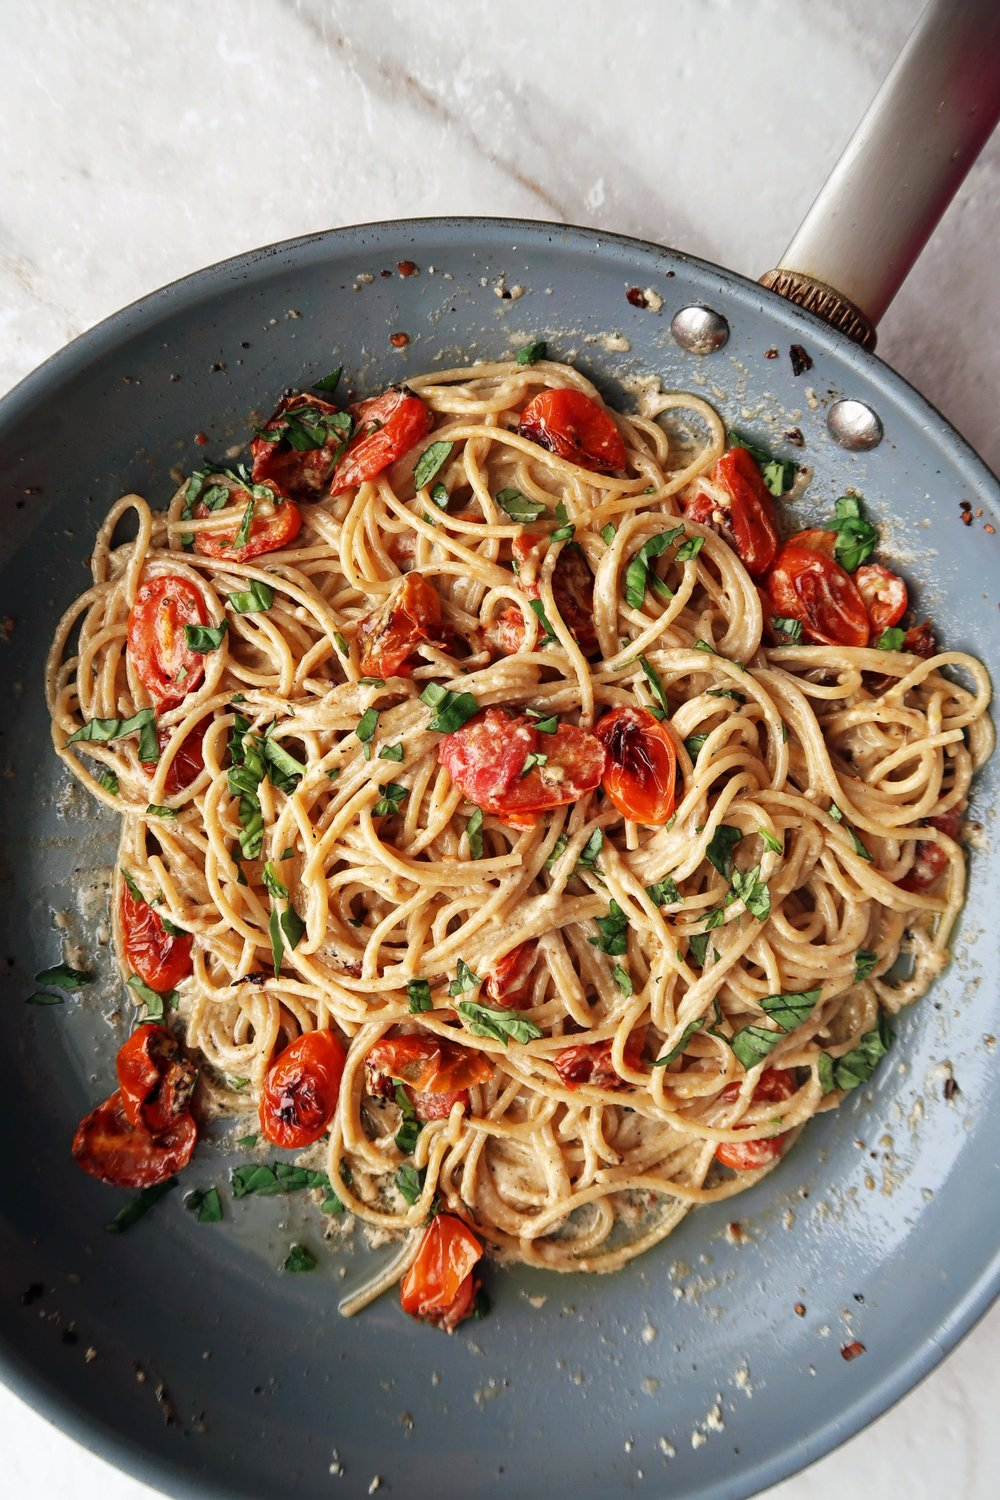 Black pepper and parmesan spaghetti with garlic roasted tomatoes tossed in a skillet.